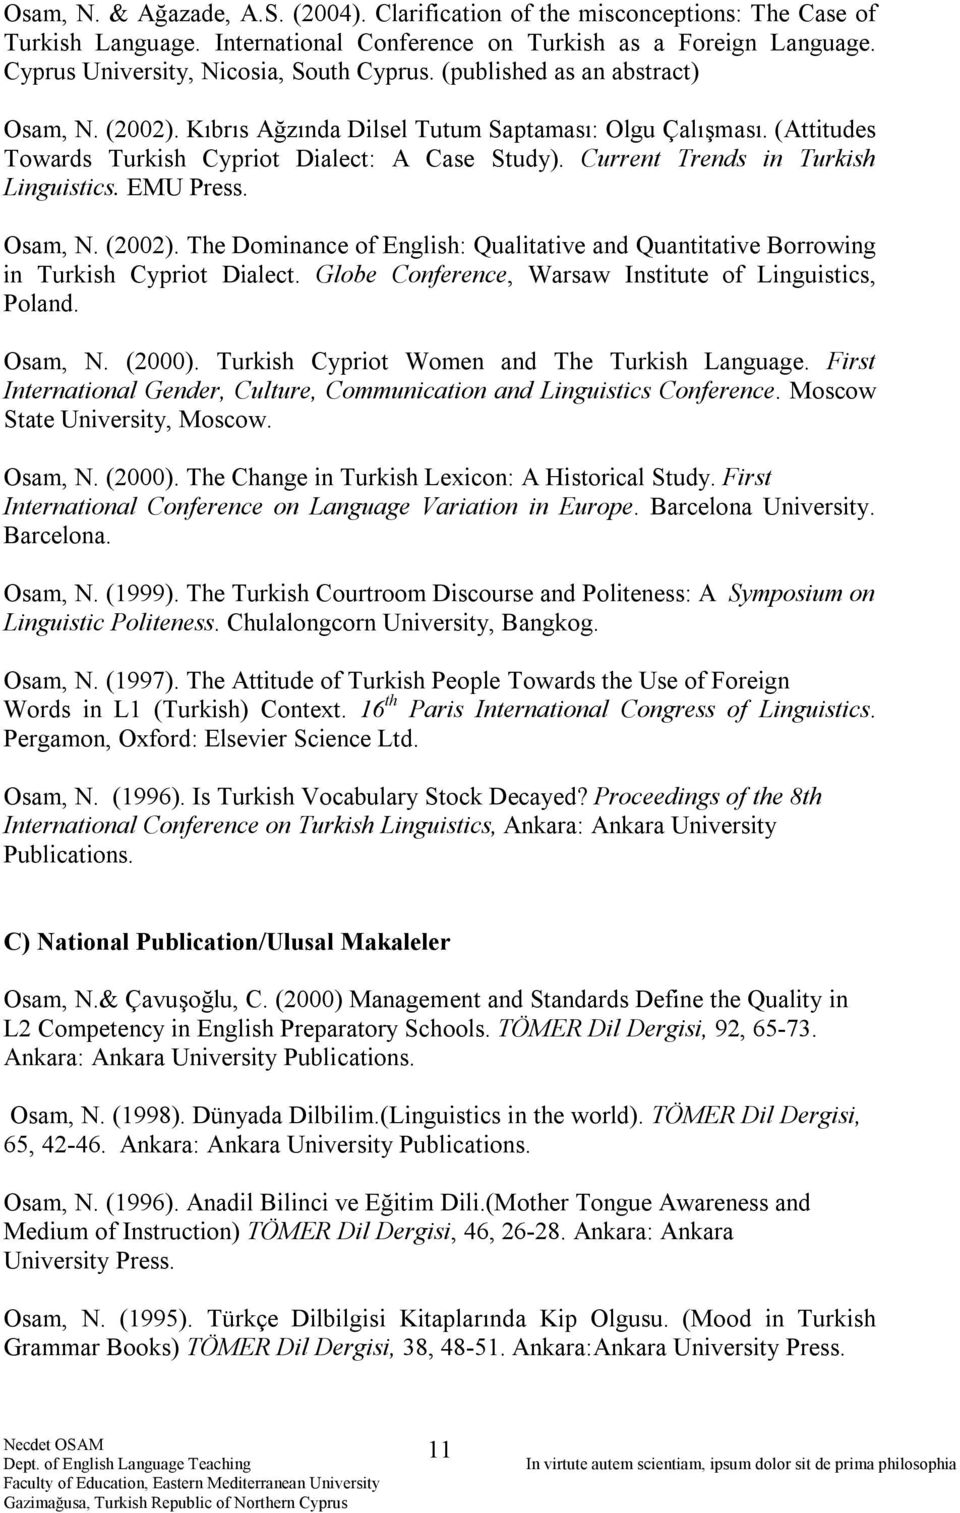 EMU Press. Osam, N. (2002). The Dominance of English: Qualitative and Quantitative Borrowing in Turkish Cypriot Dialect. Globe Conference, Warsaw Institute of Linguistics, Poland. Osam, N. (2000).